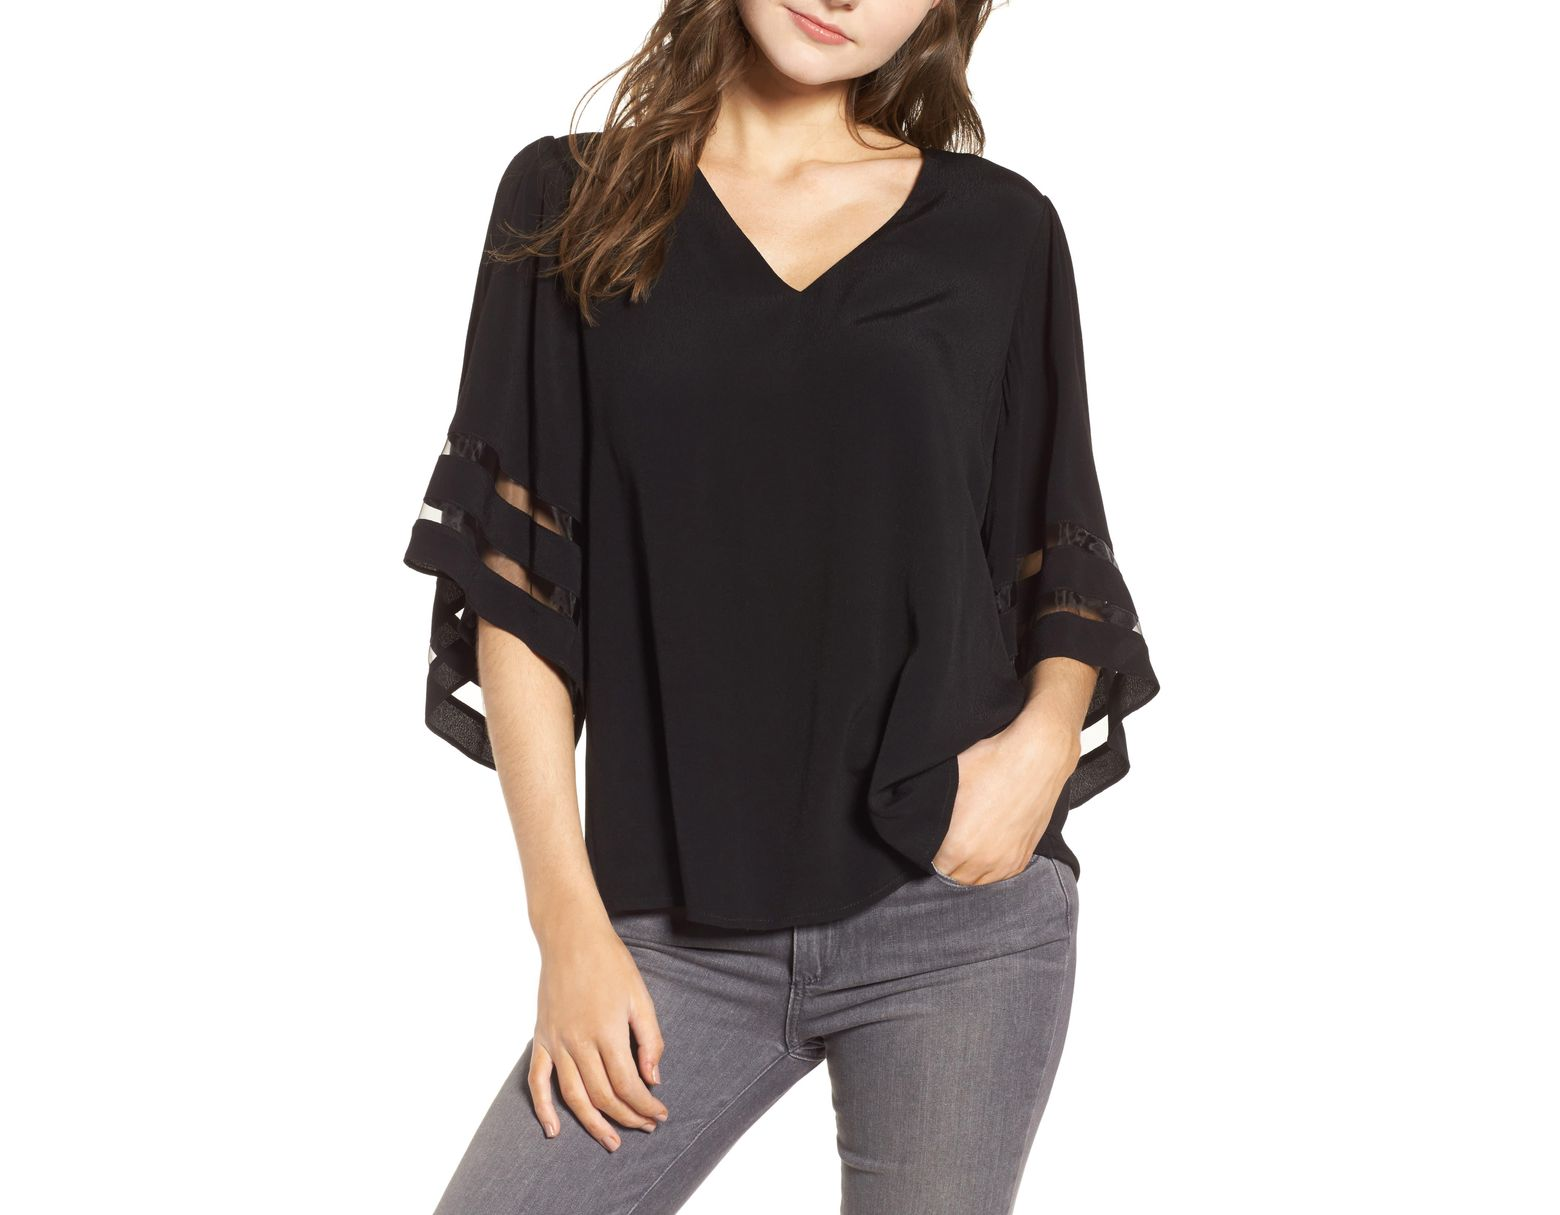 2657cc74d76789 Chelsea28 Illusion Sleeve Top in Black - Save 68% - Lyst